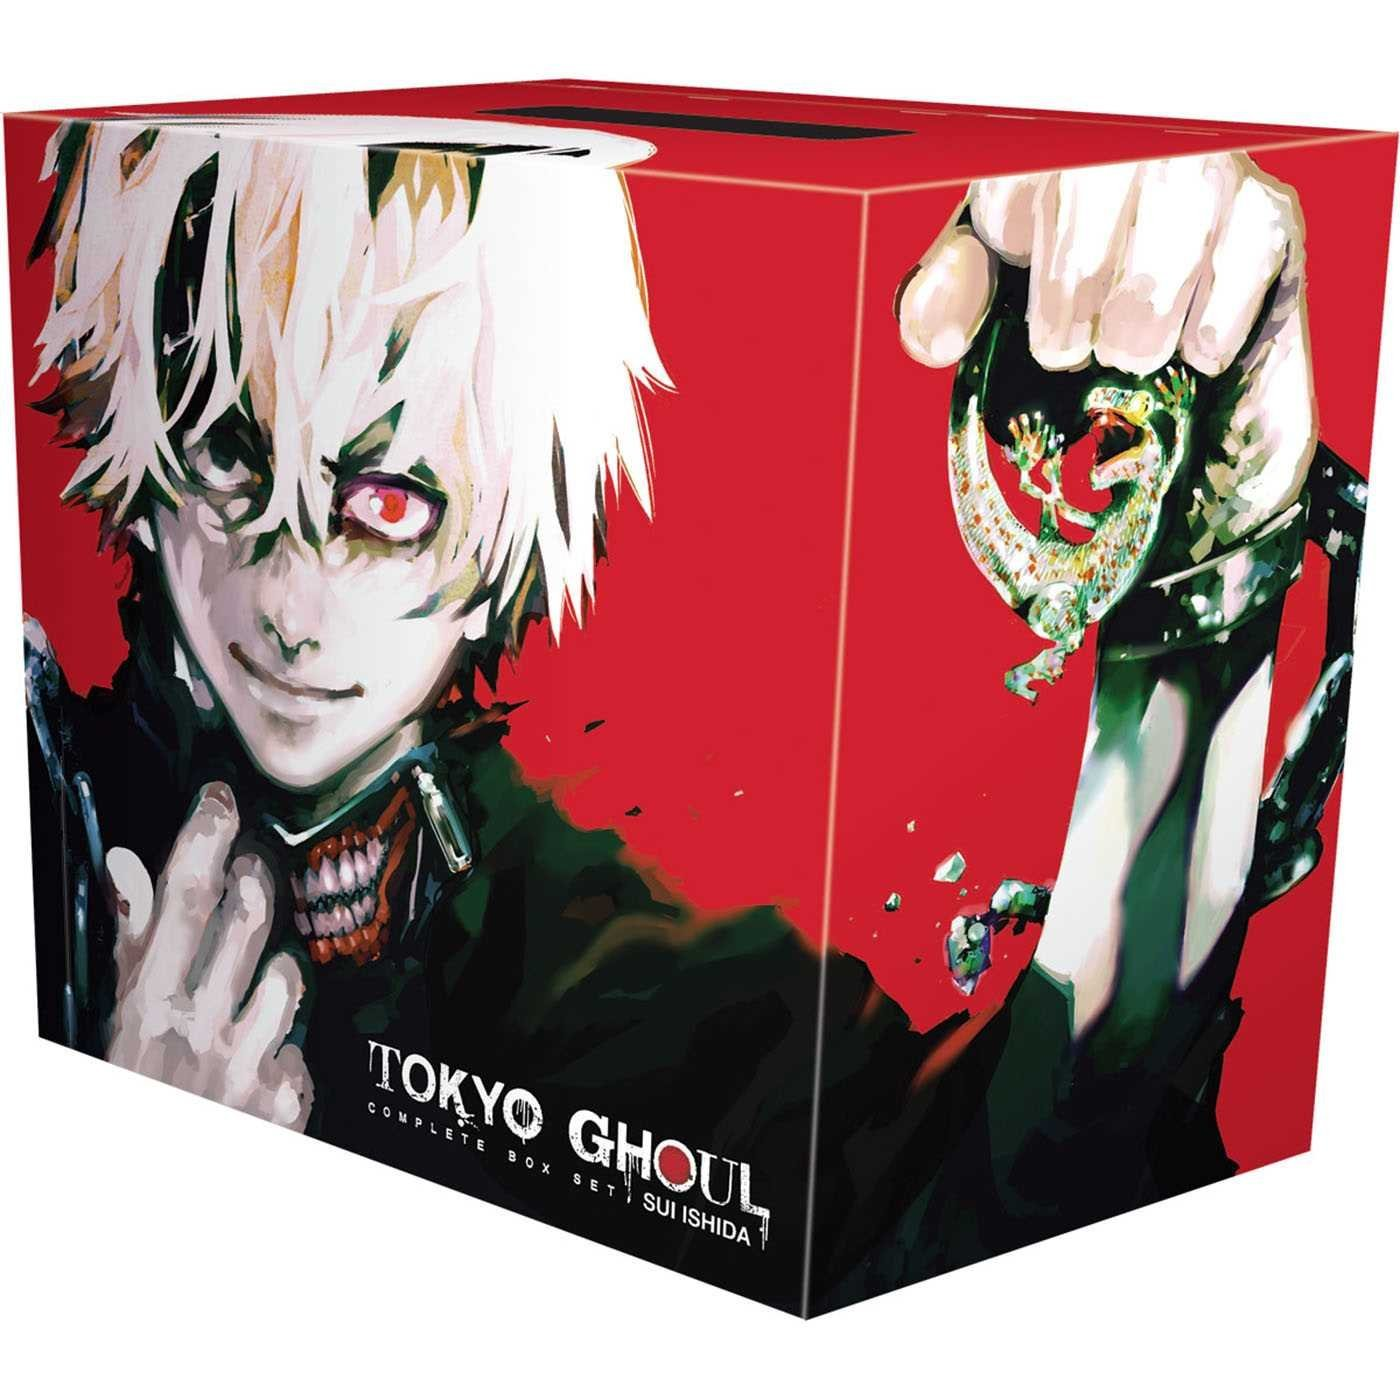 Tokyo Ghoul Complete Box Set  Includes Vols. 1 14 With Premium